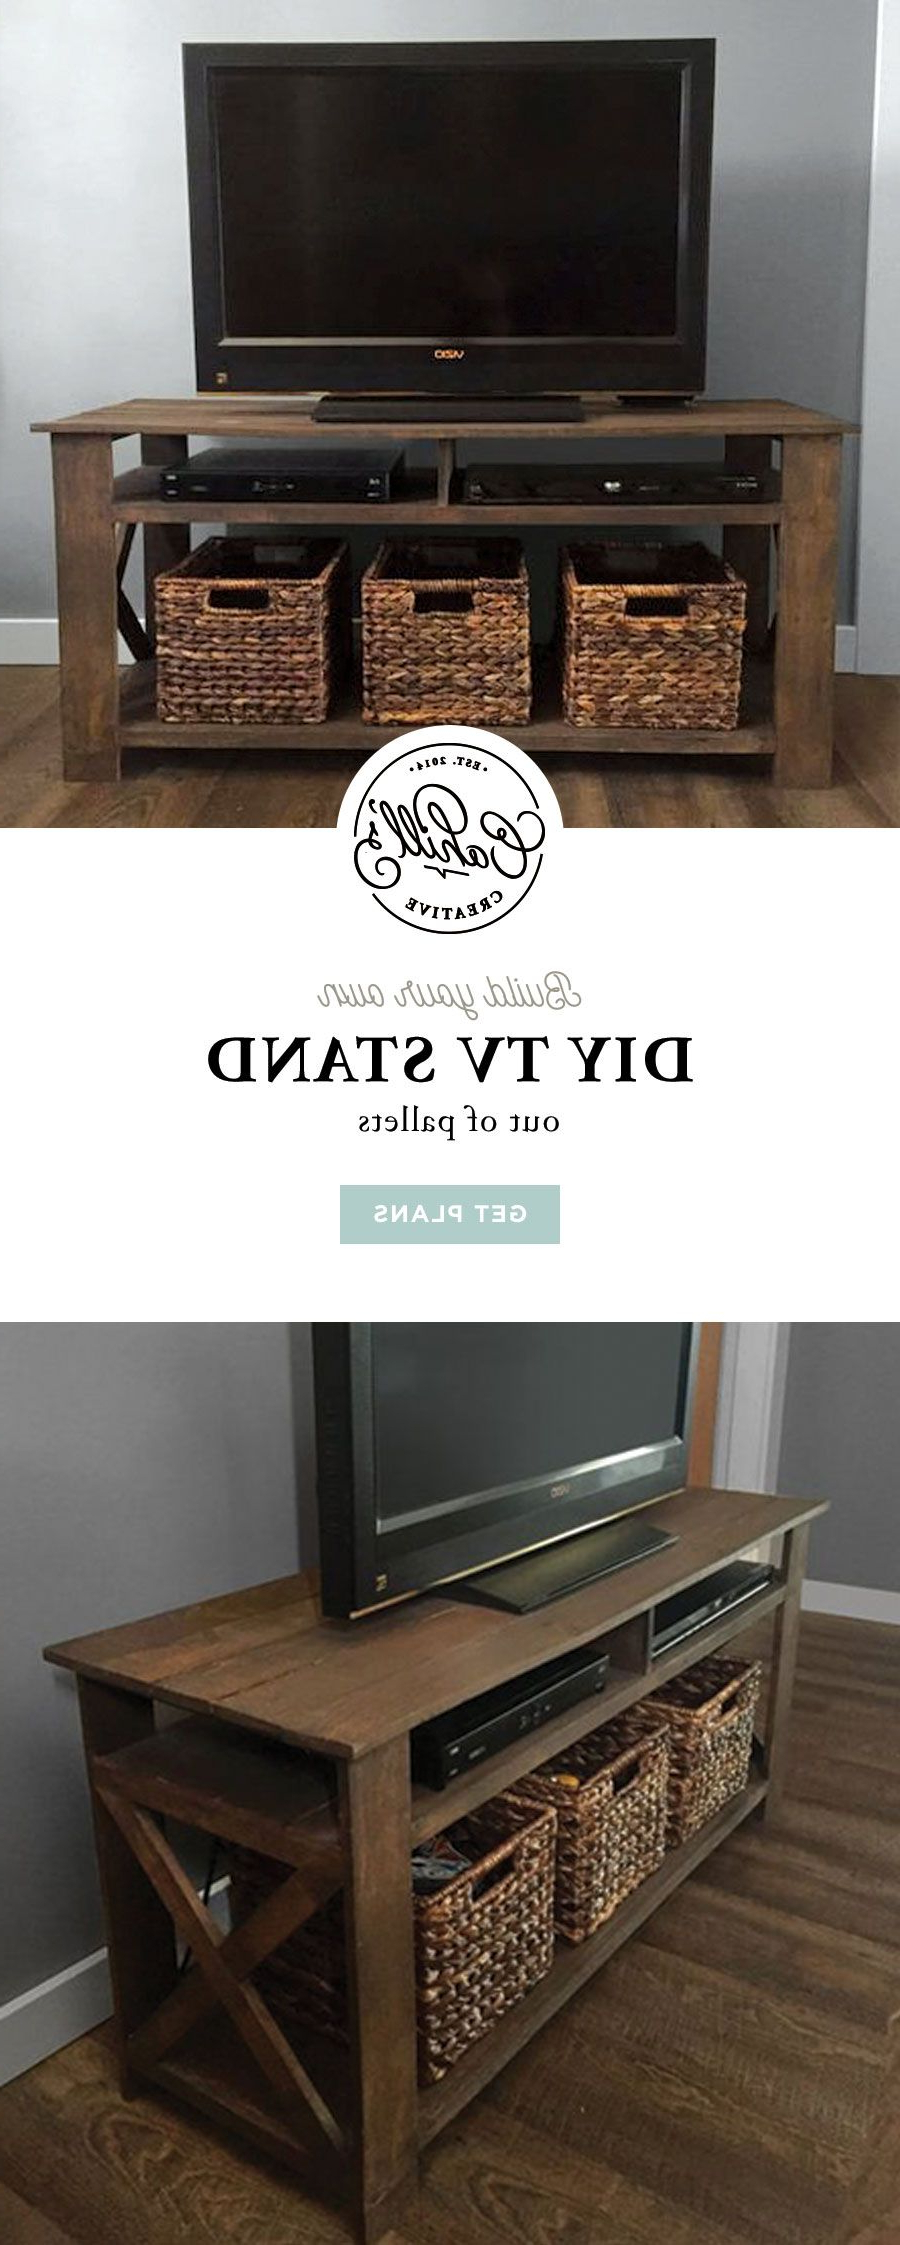 Pinkelsey Cahill On Woodworking | Pinterest | Diy Tv Stand, Diy Pertaining To Walters Media Console Tables (View 13 of 20)